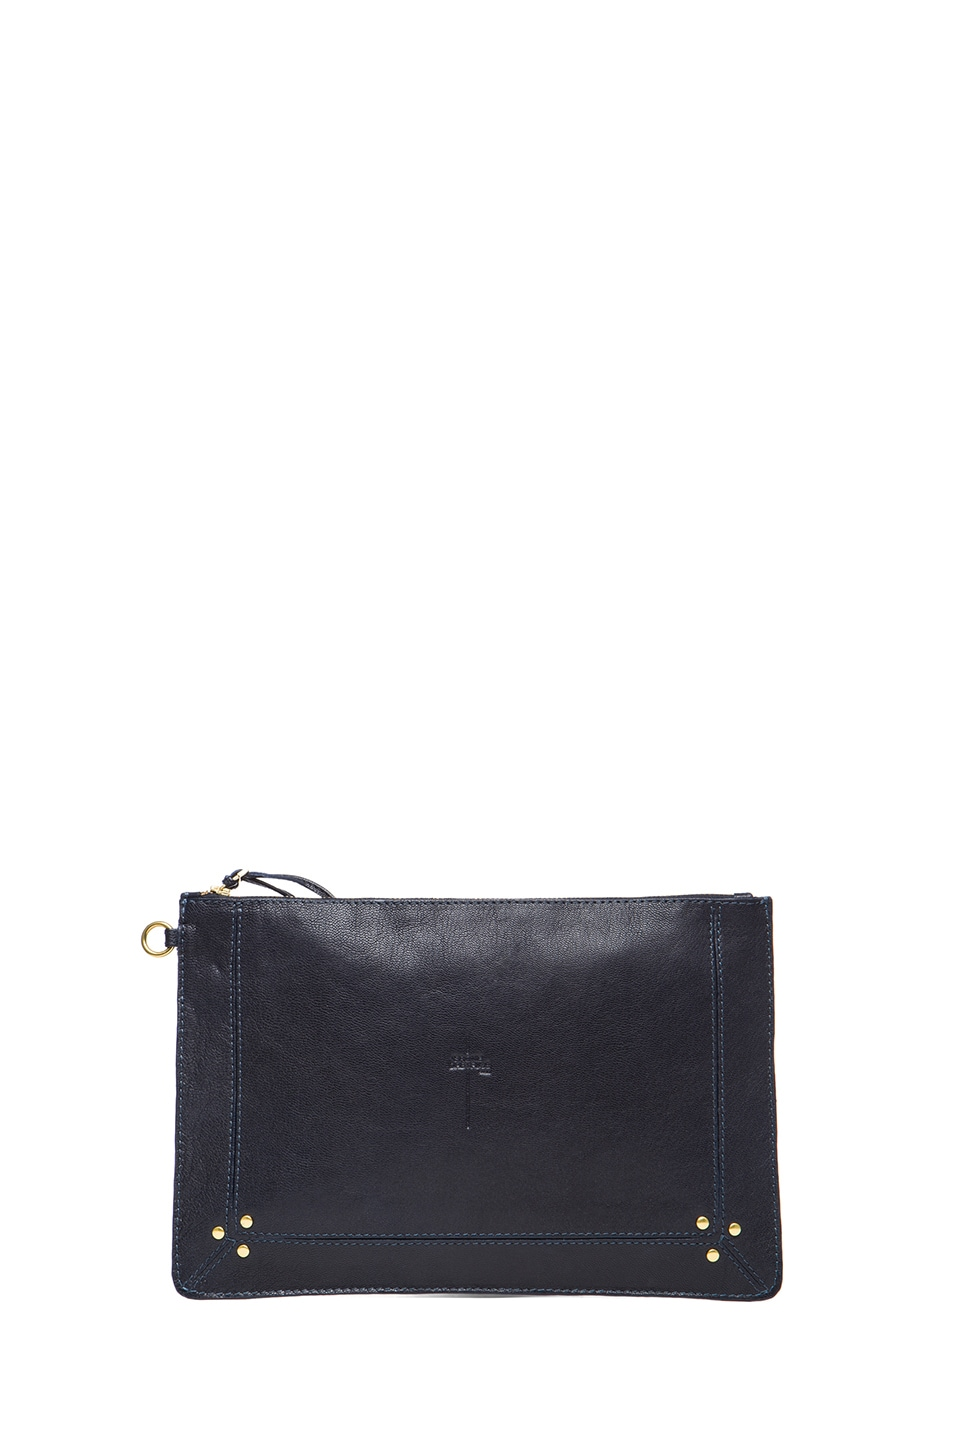 Image 1 of Jerome Dreyfuss Large Popoche Clutch in Marine